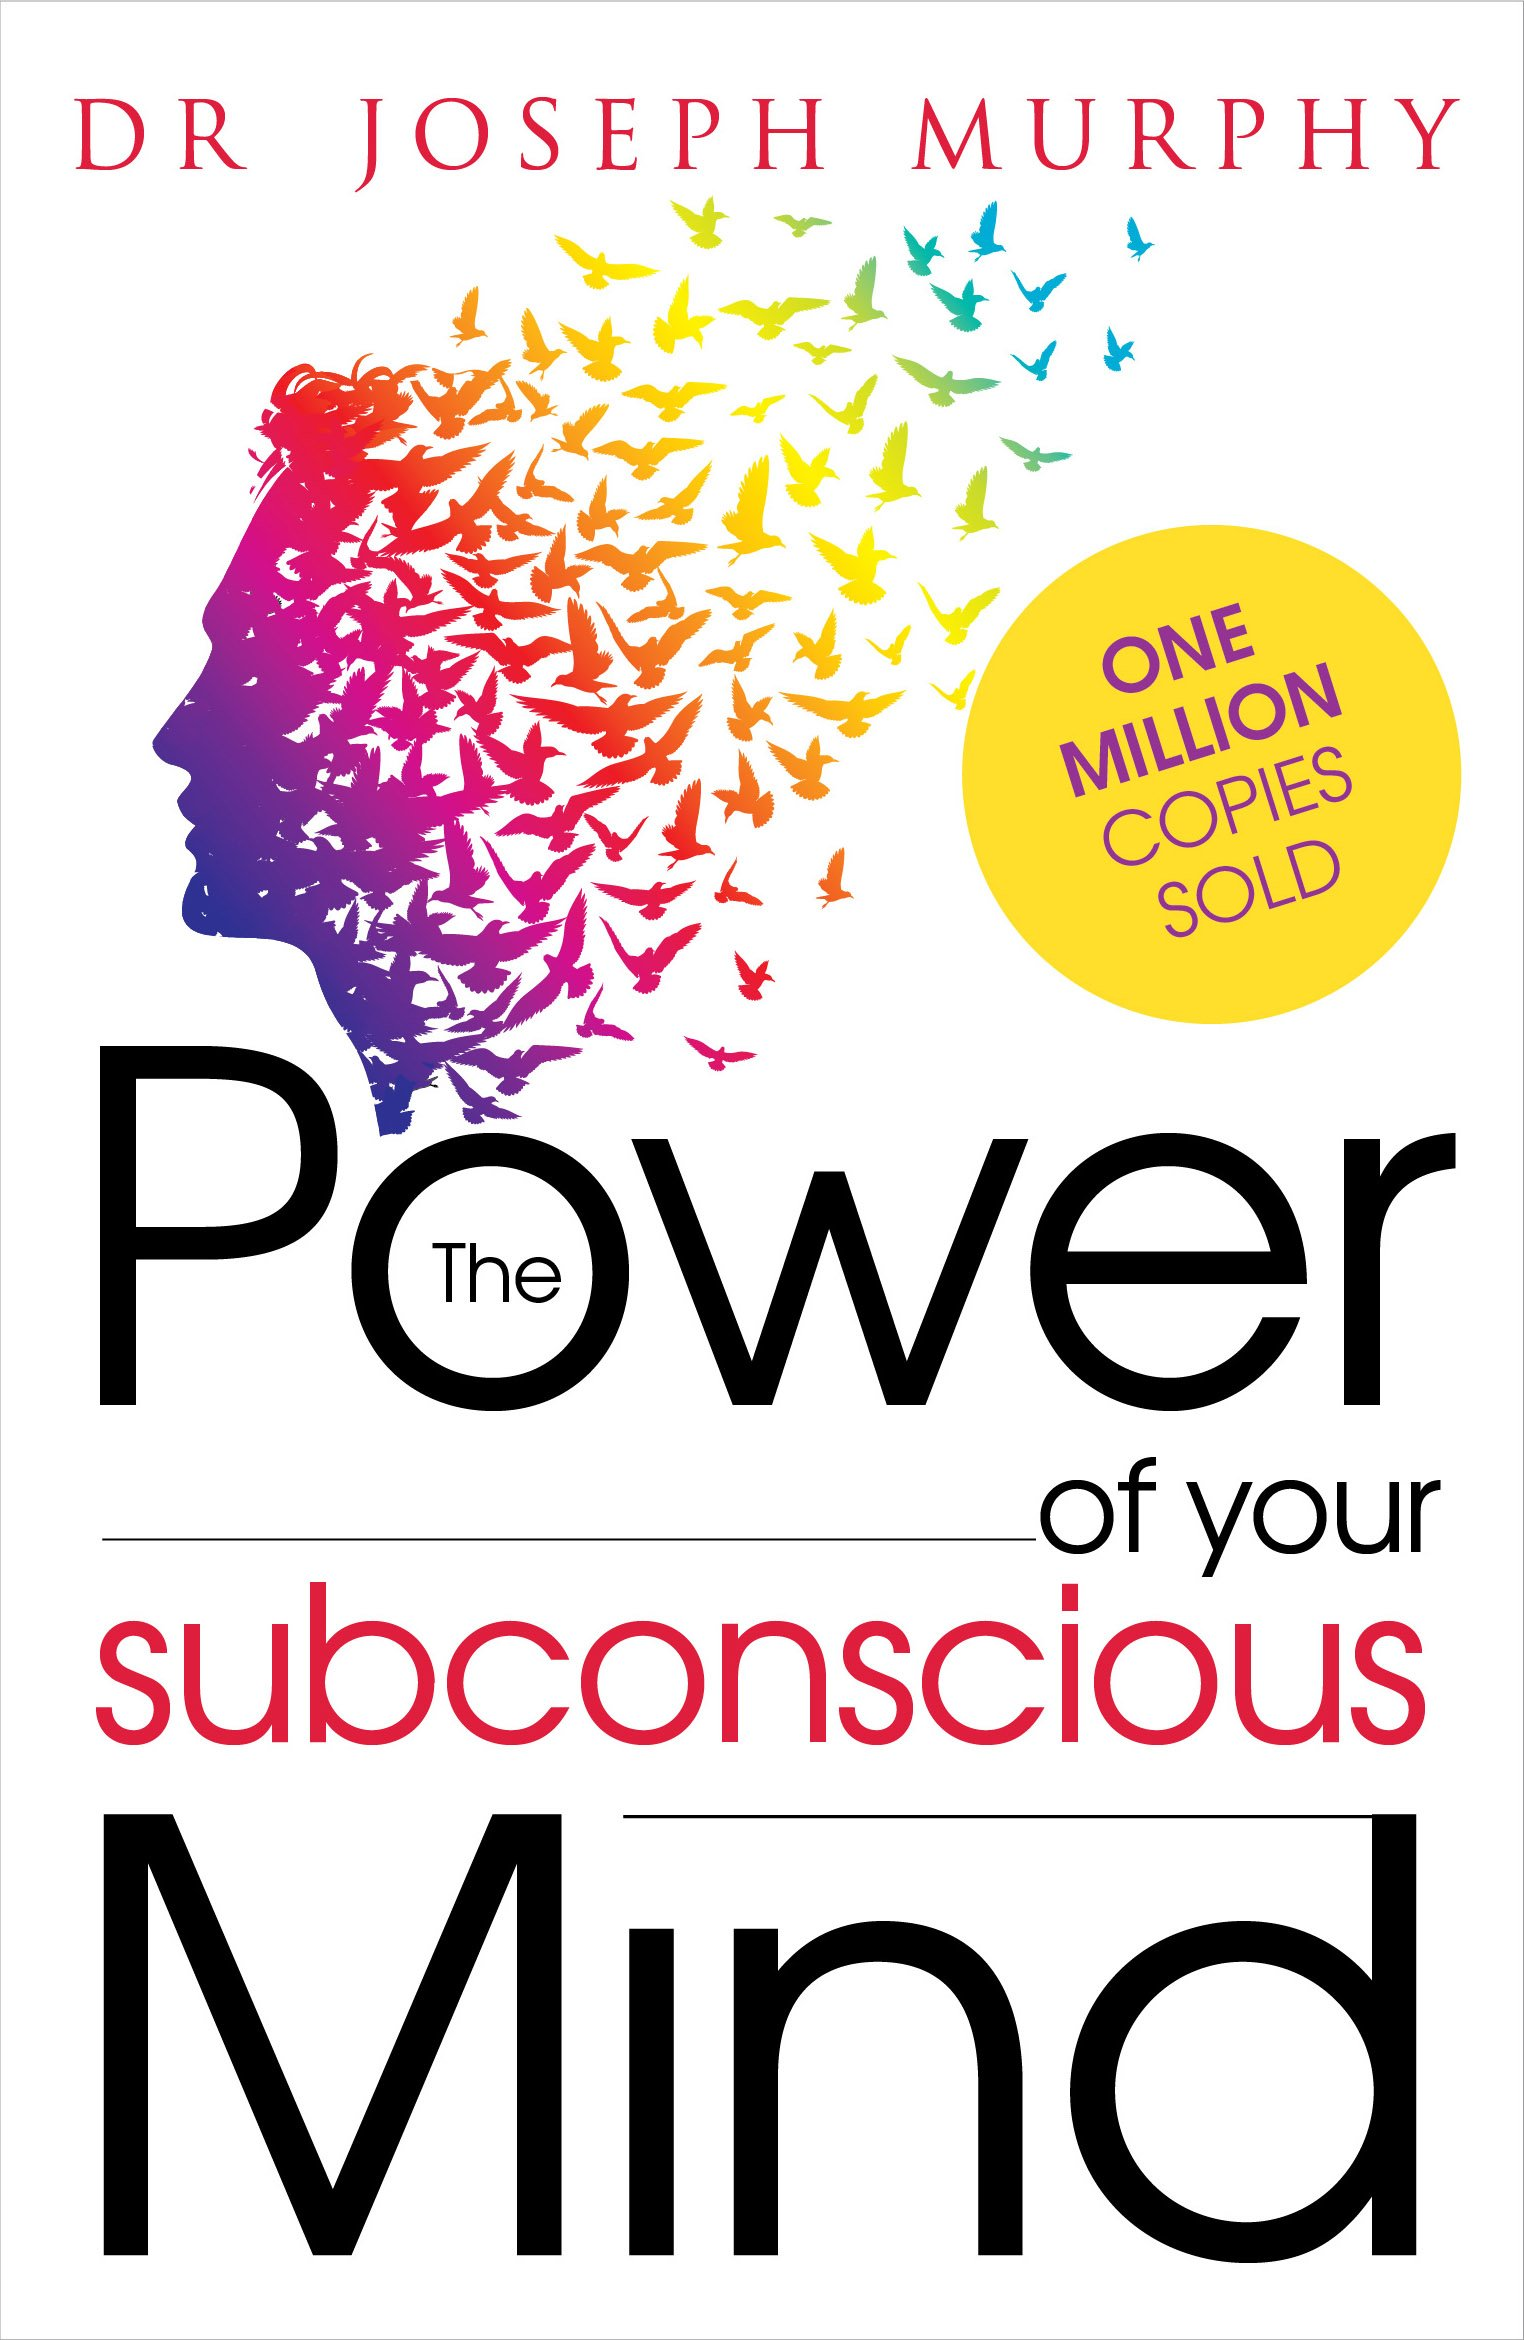 the power of your subconscious mind - 81gTwYAhU7L - The Power of your Subconscious Mind